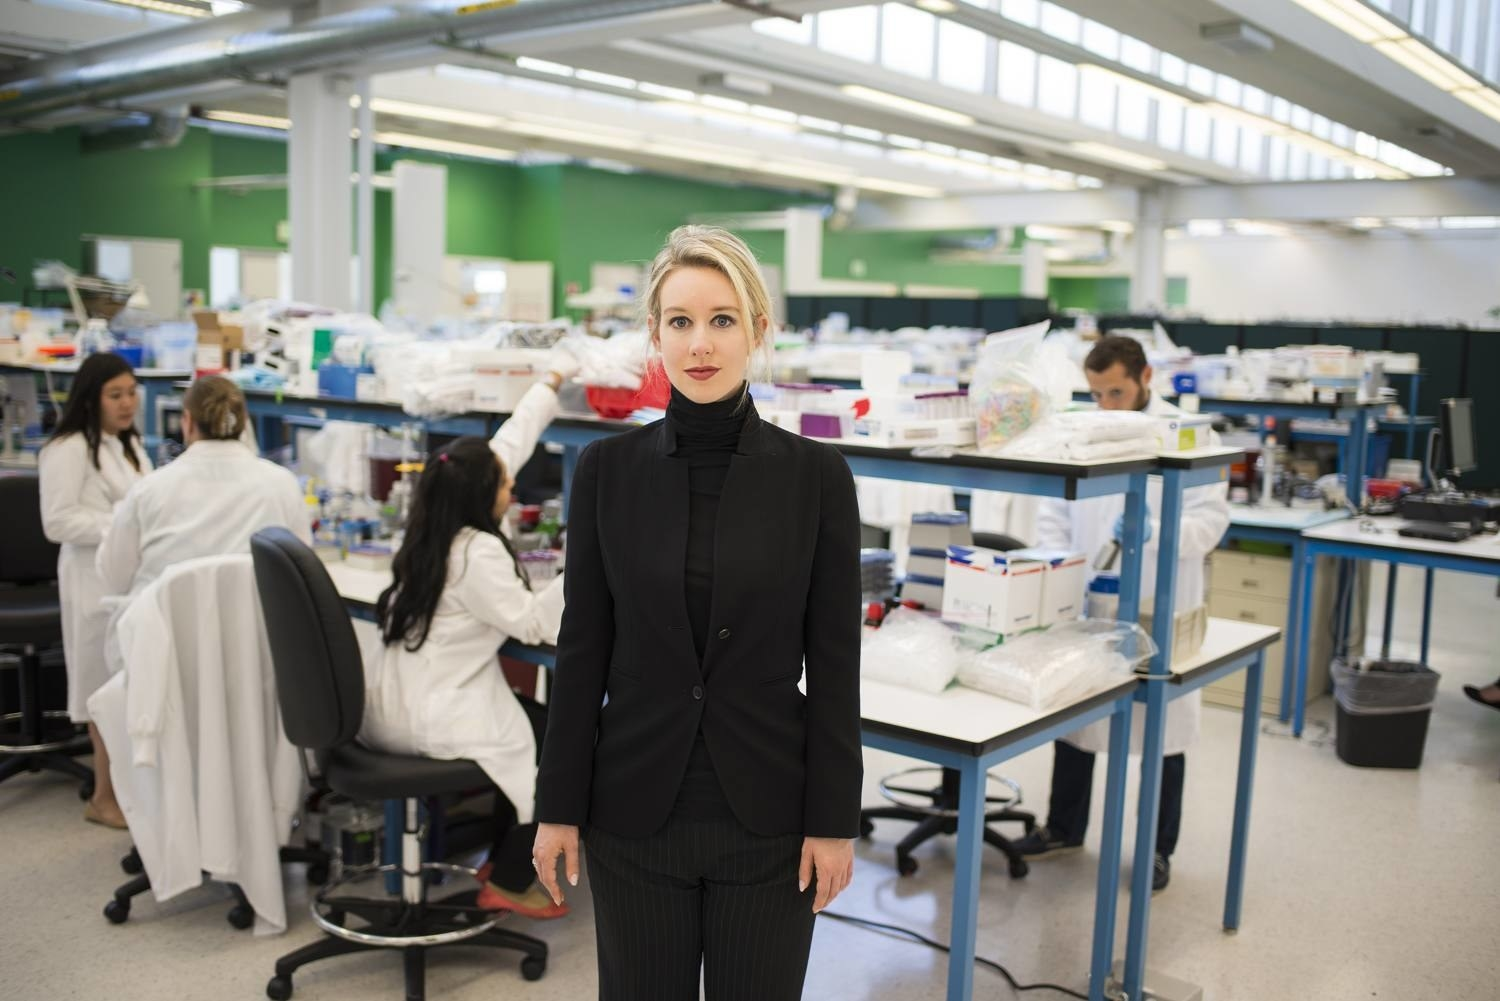 Why Are We So Obsessed With Theranos And Elizabeth Holmes?